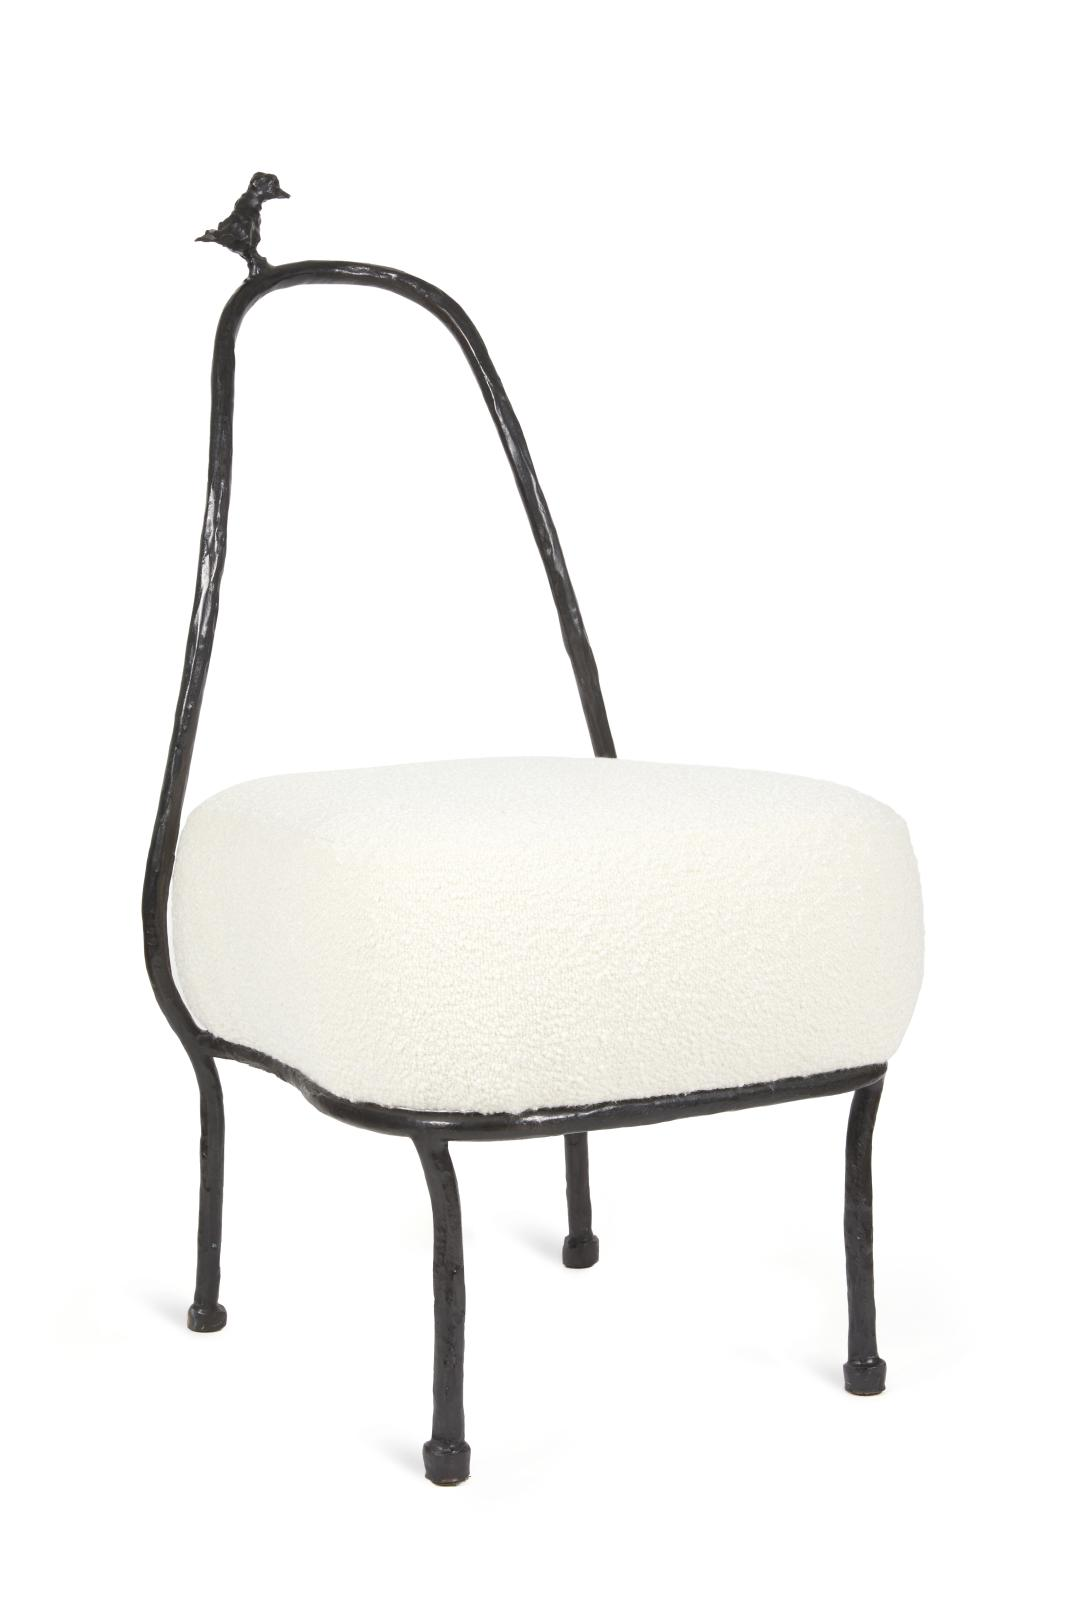 Eric Schmitt's Le Faucon maltais low chair, a new creation of which 30copies were made.